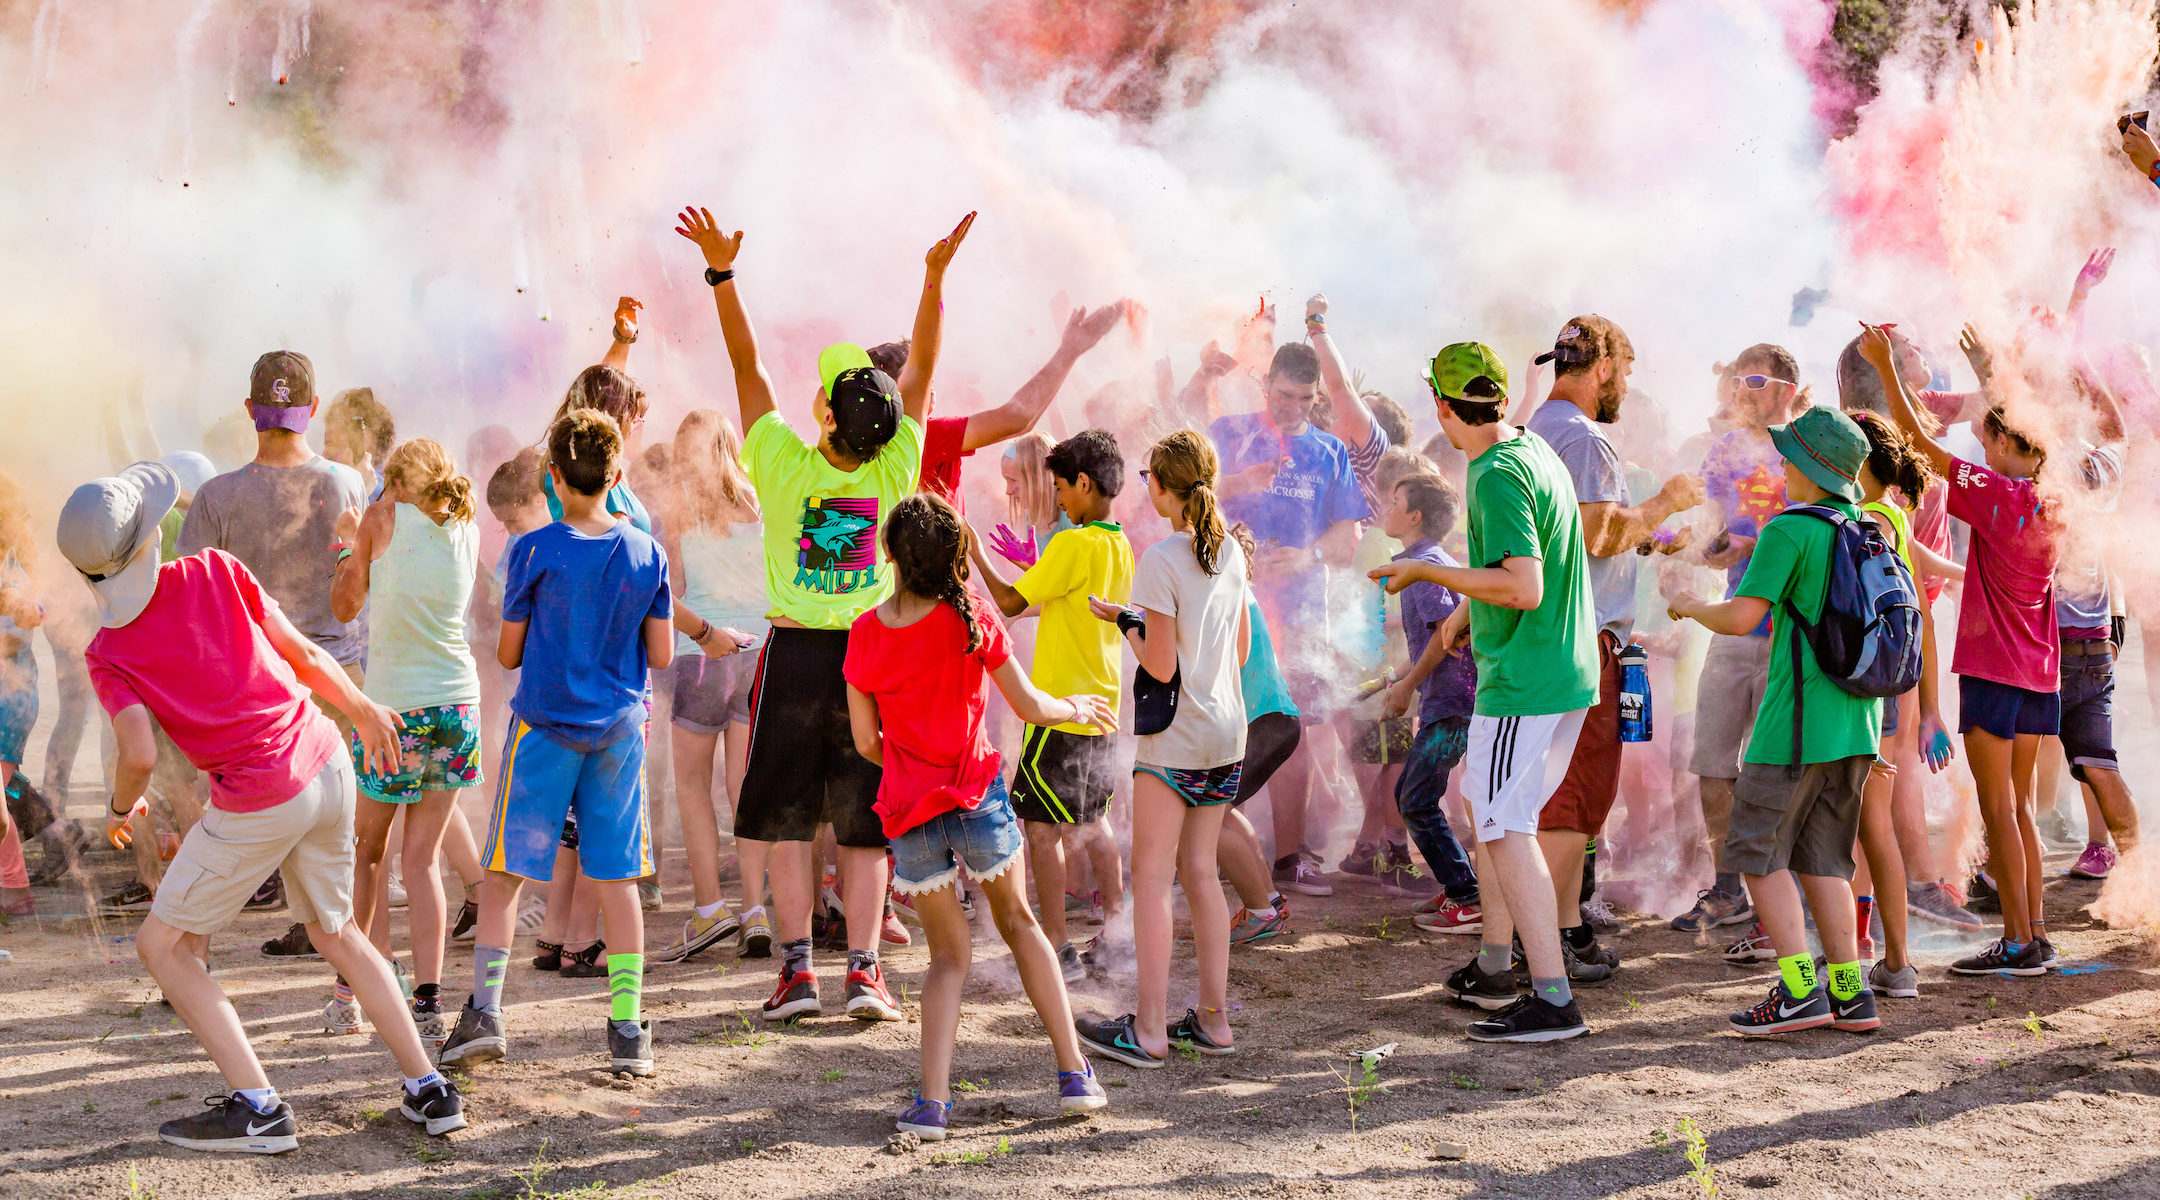 Like many camp activities, the 2017 Color War at JCC Ranch Camp in Colorado involved crowds of kids. This year, with its summer session canceled, the camp is becoming a family camp with socially distanced activities. (Noah Gallagher)